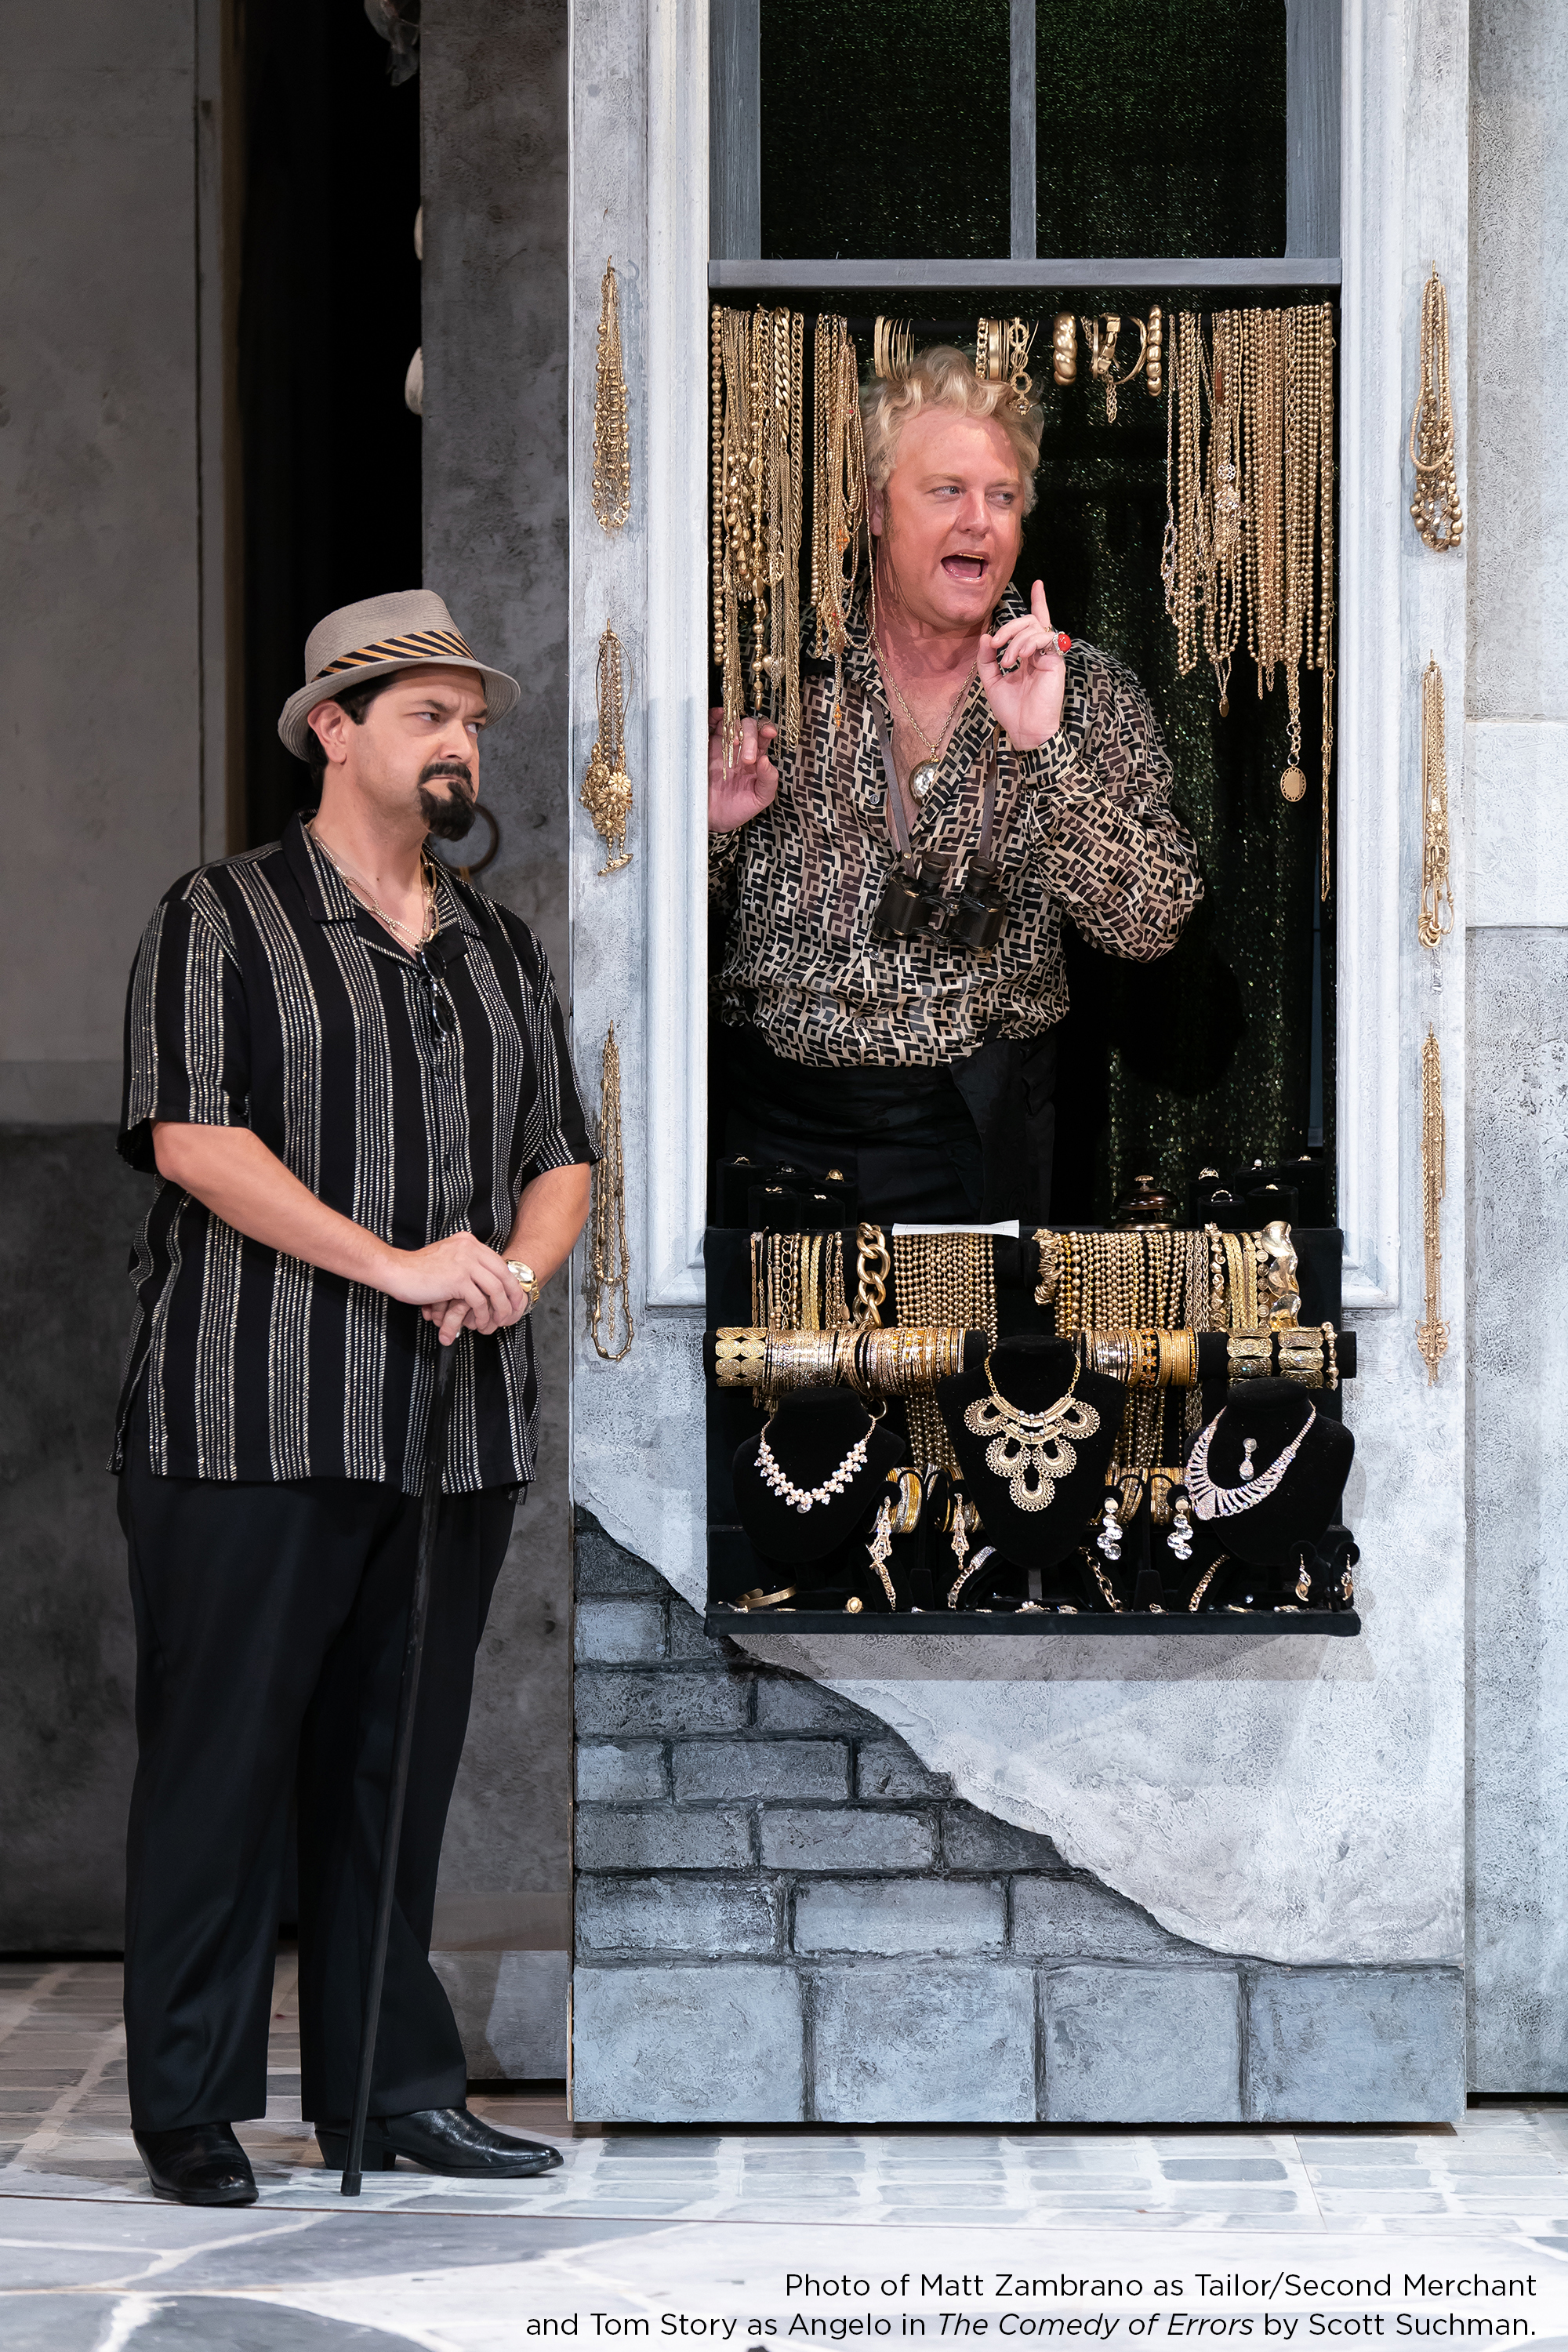 Photo of Matt Zambrano as Tailor/Second Merchant and Tom Story as Angelo in The Comedy of Errors by Scott Suchman.